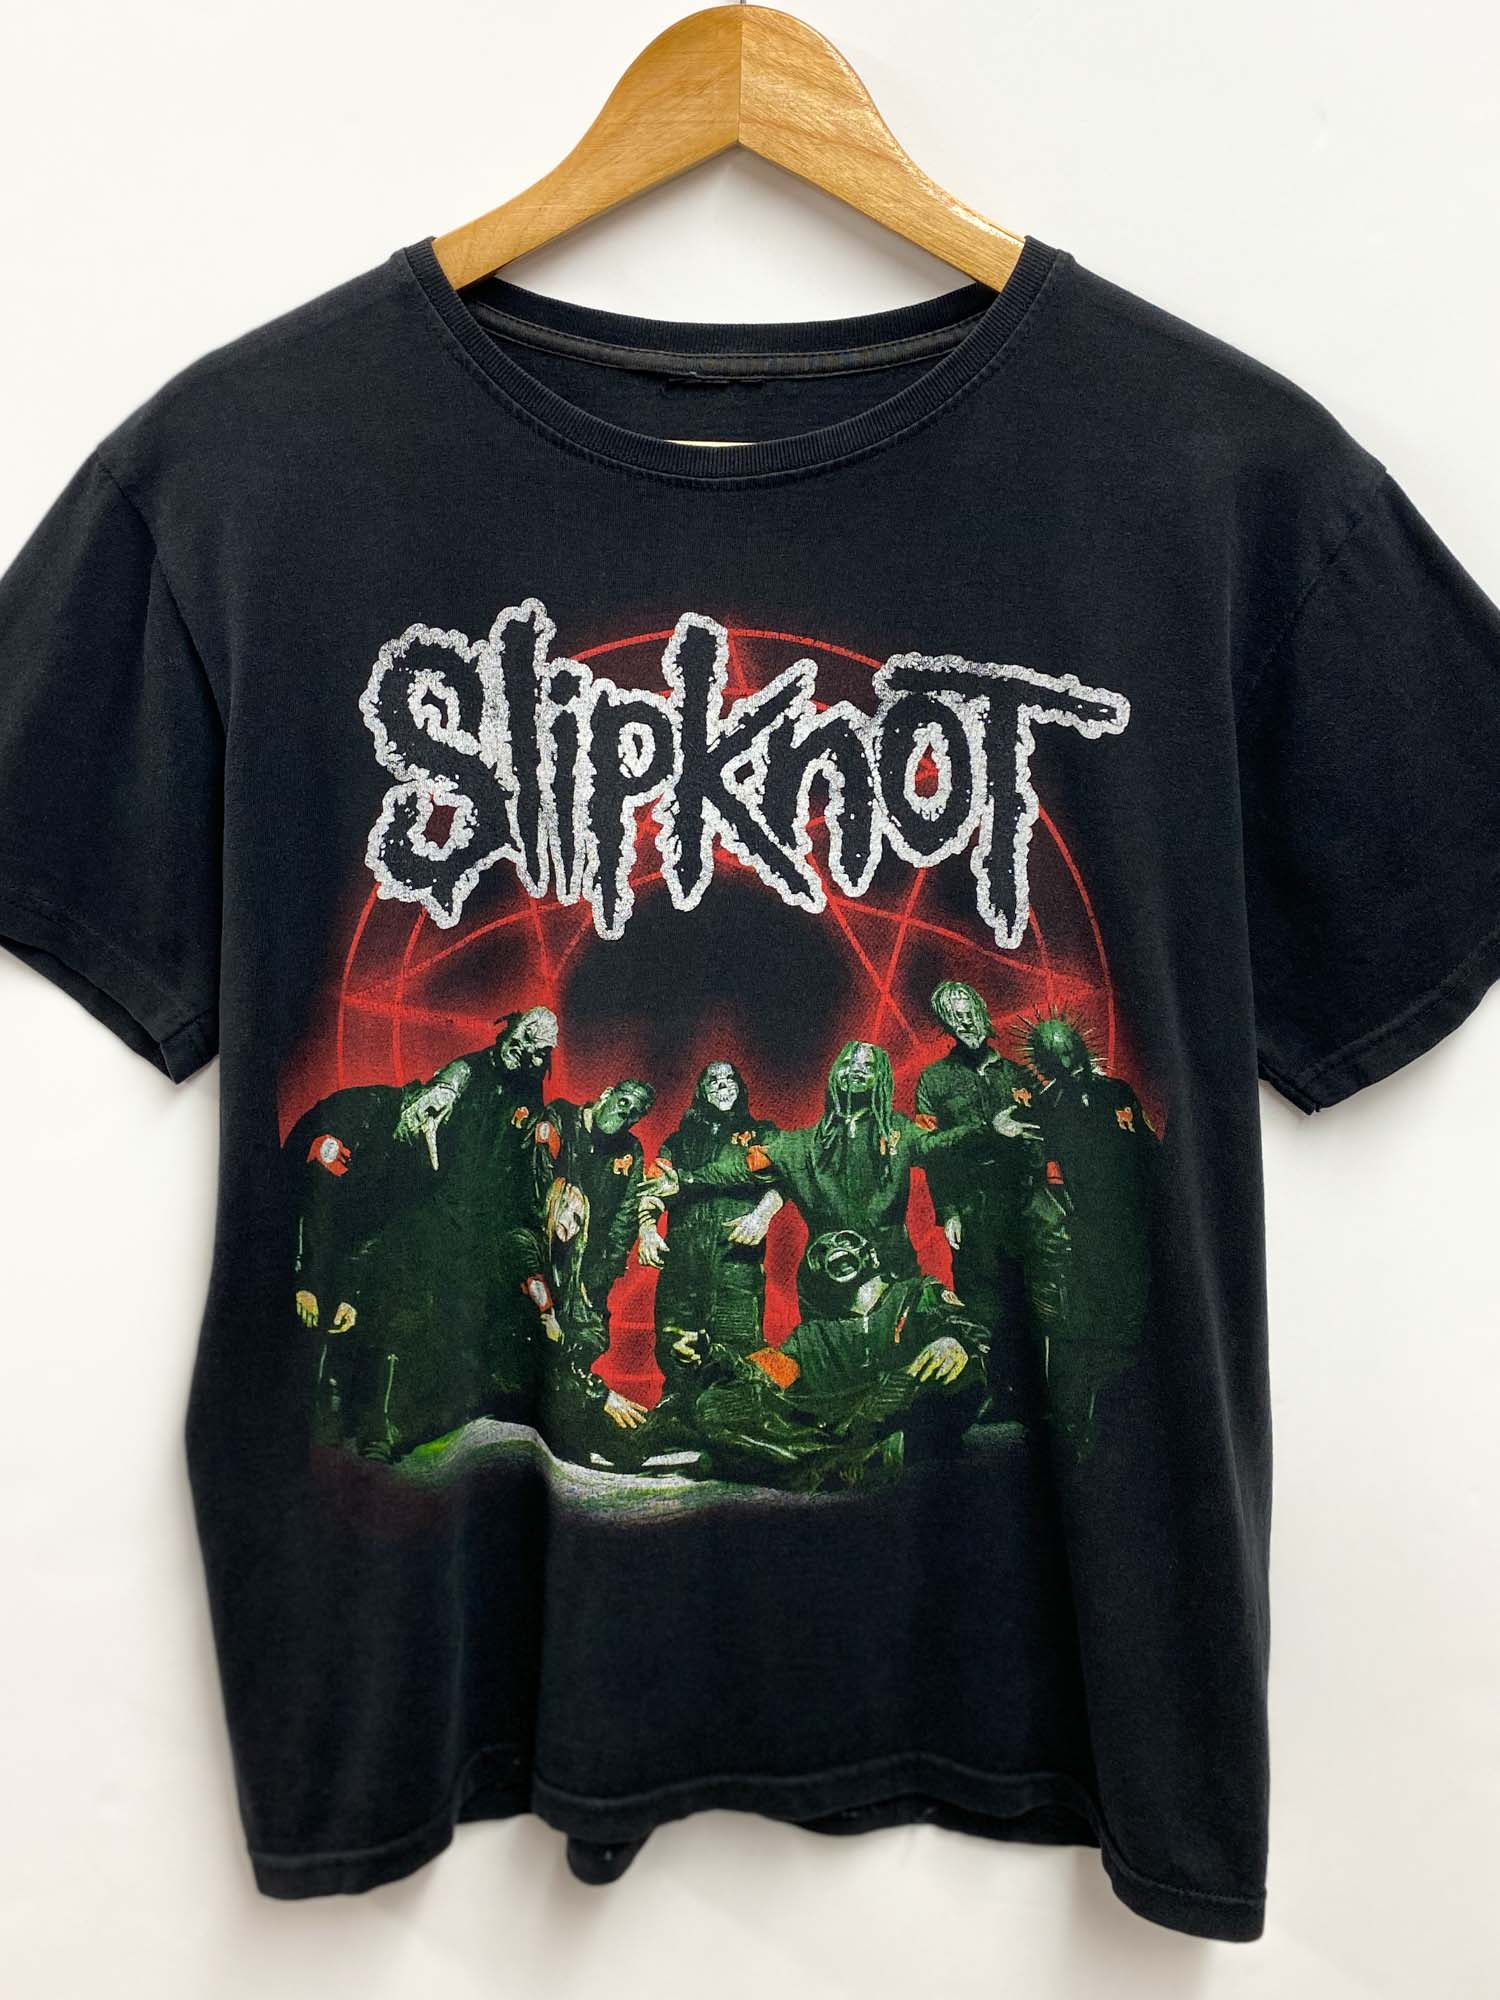 VINTAGE SLIPKNOT BAND TEE